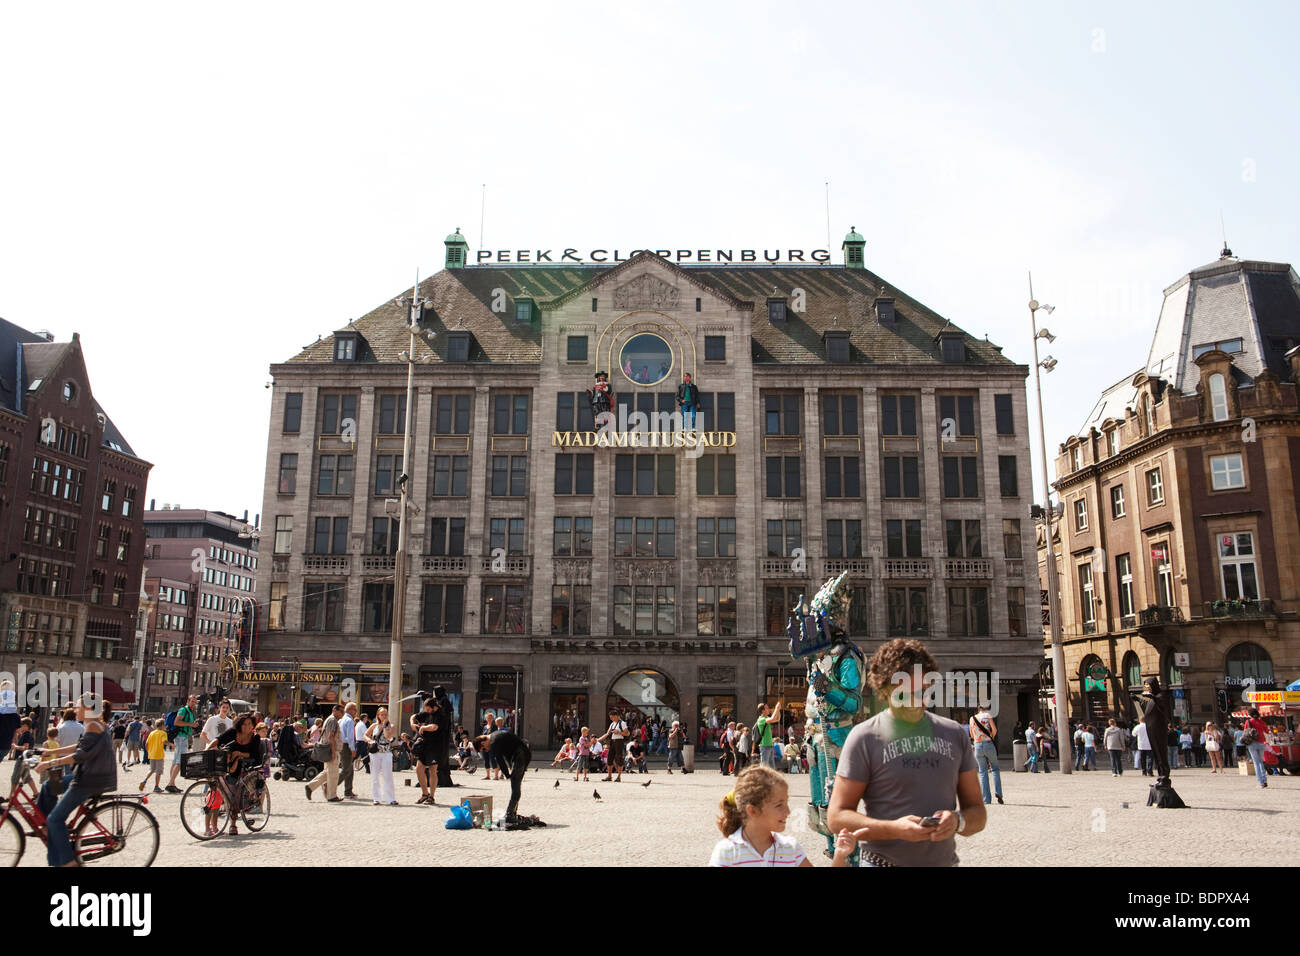 Madame Tussaud Amsterdam Dam Square, Holland - Stock Image